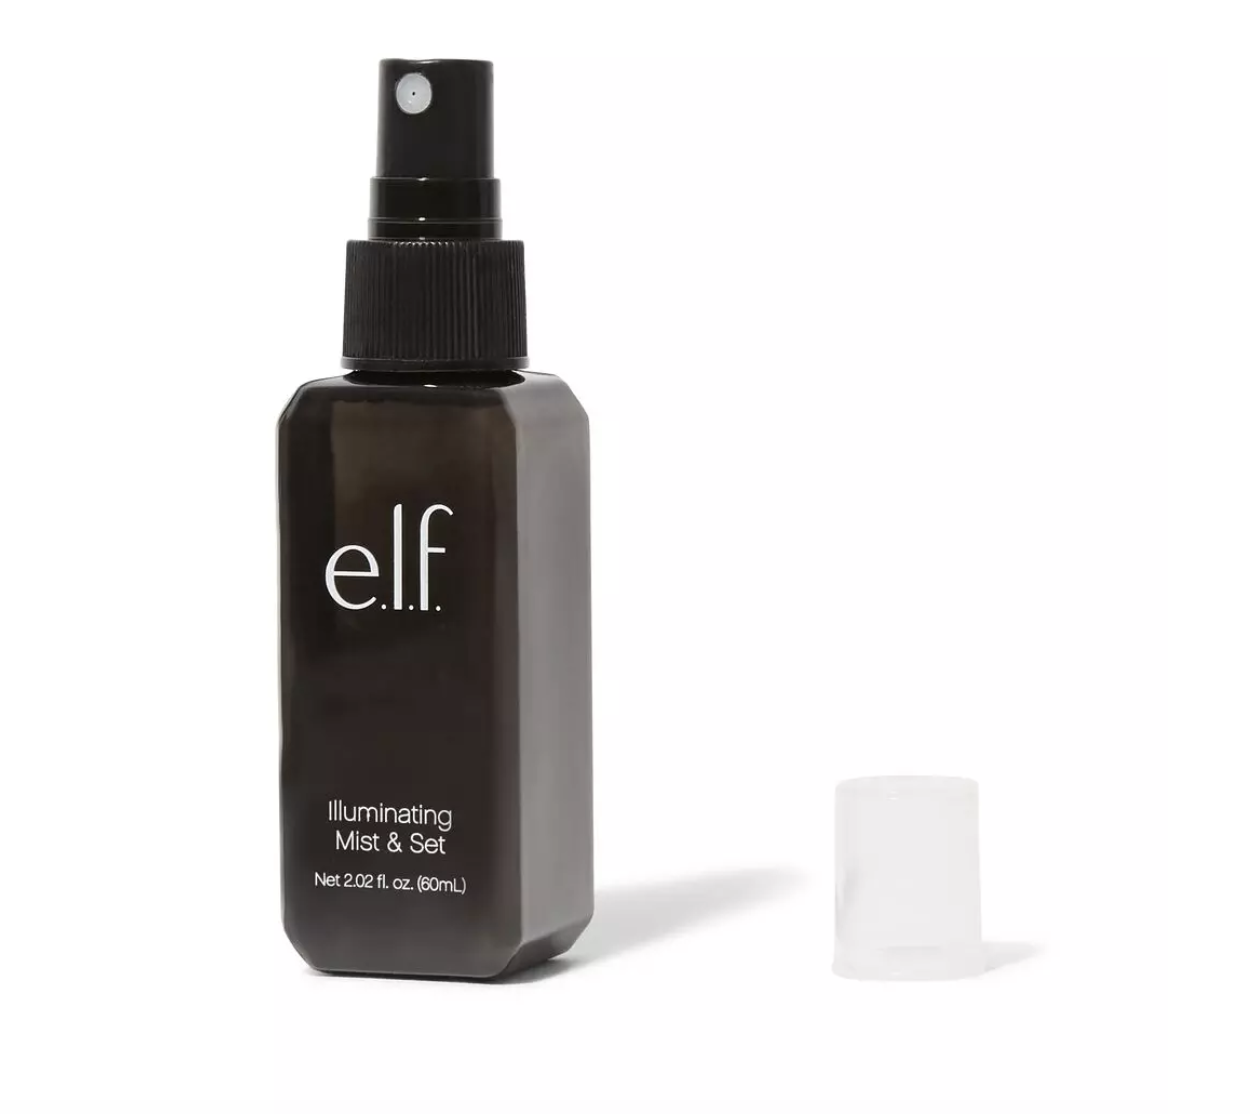 the setting spray in a black bottle